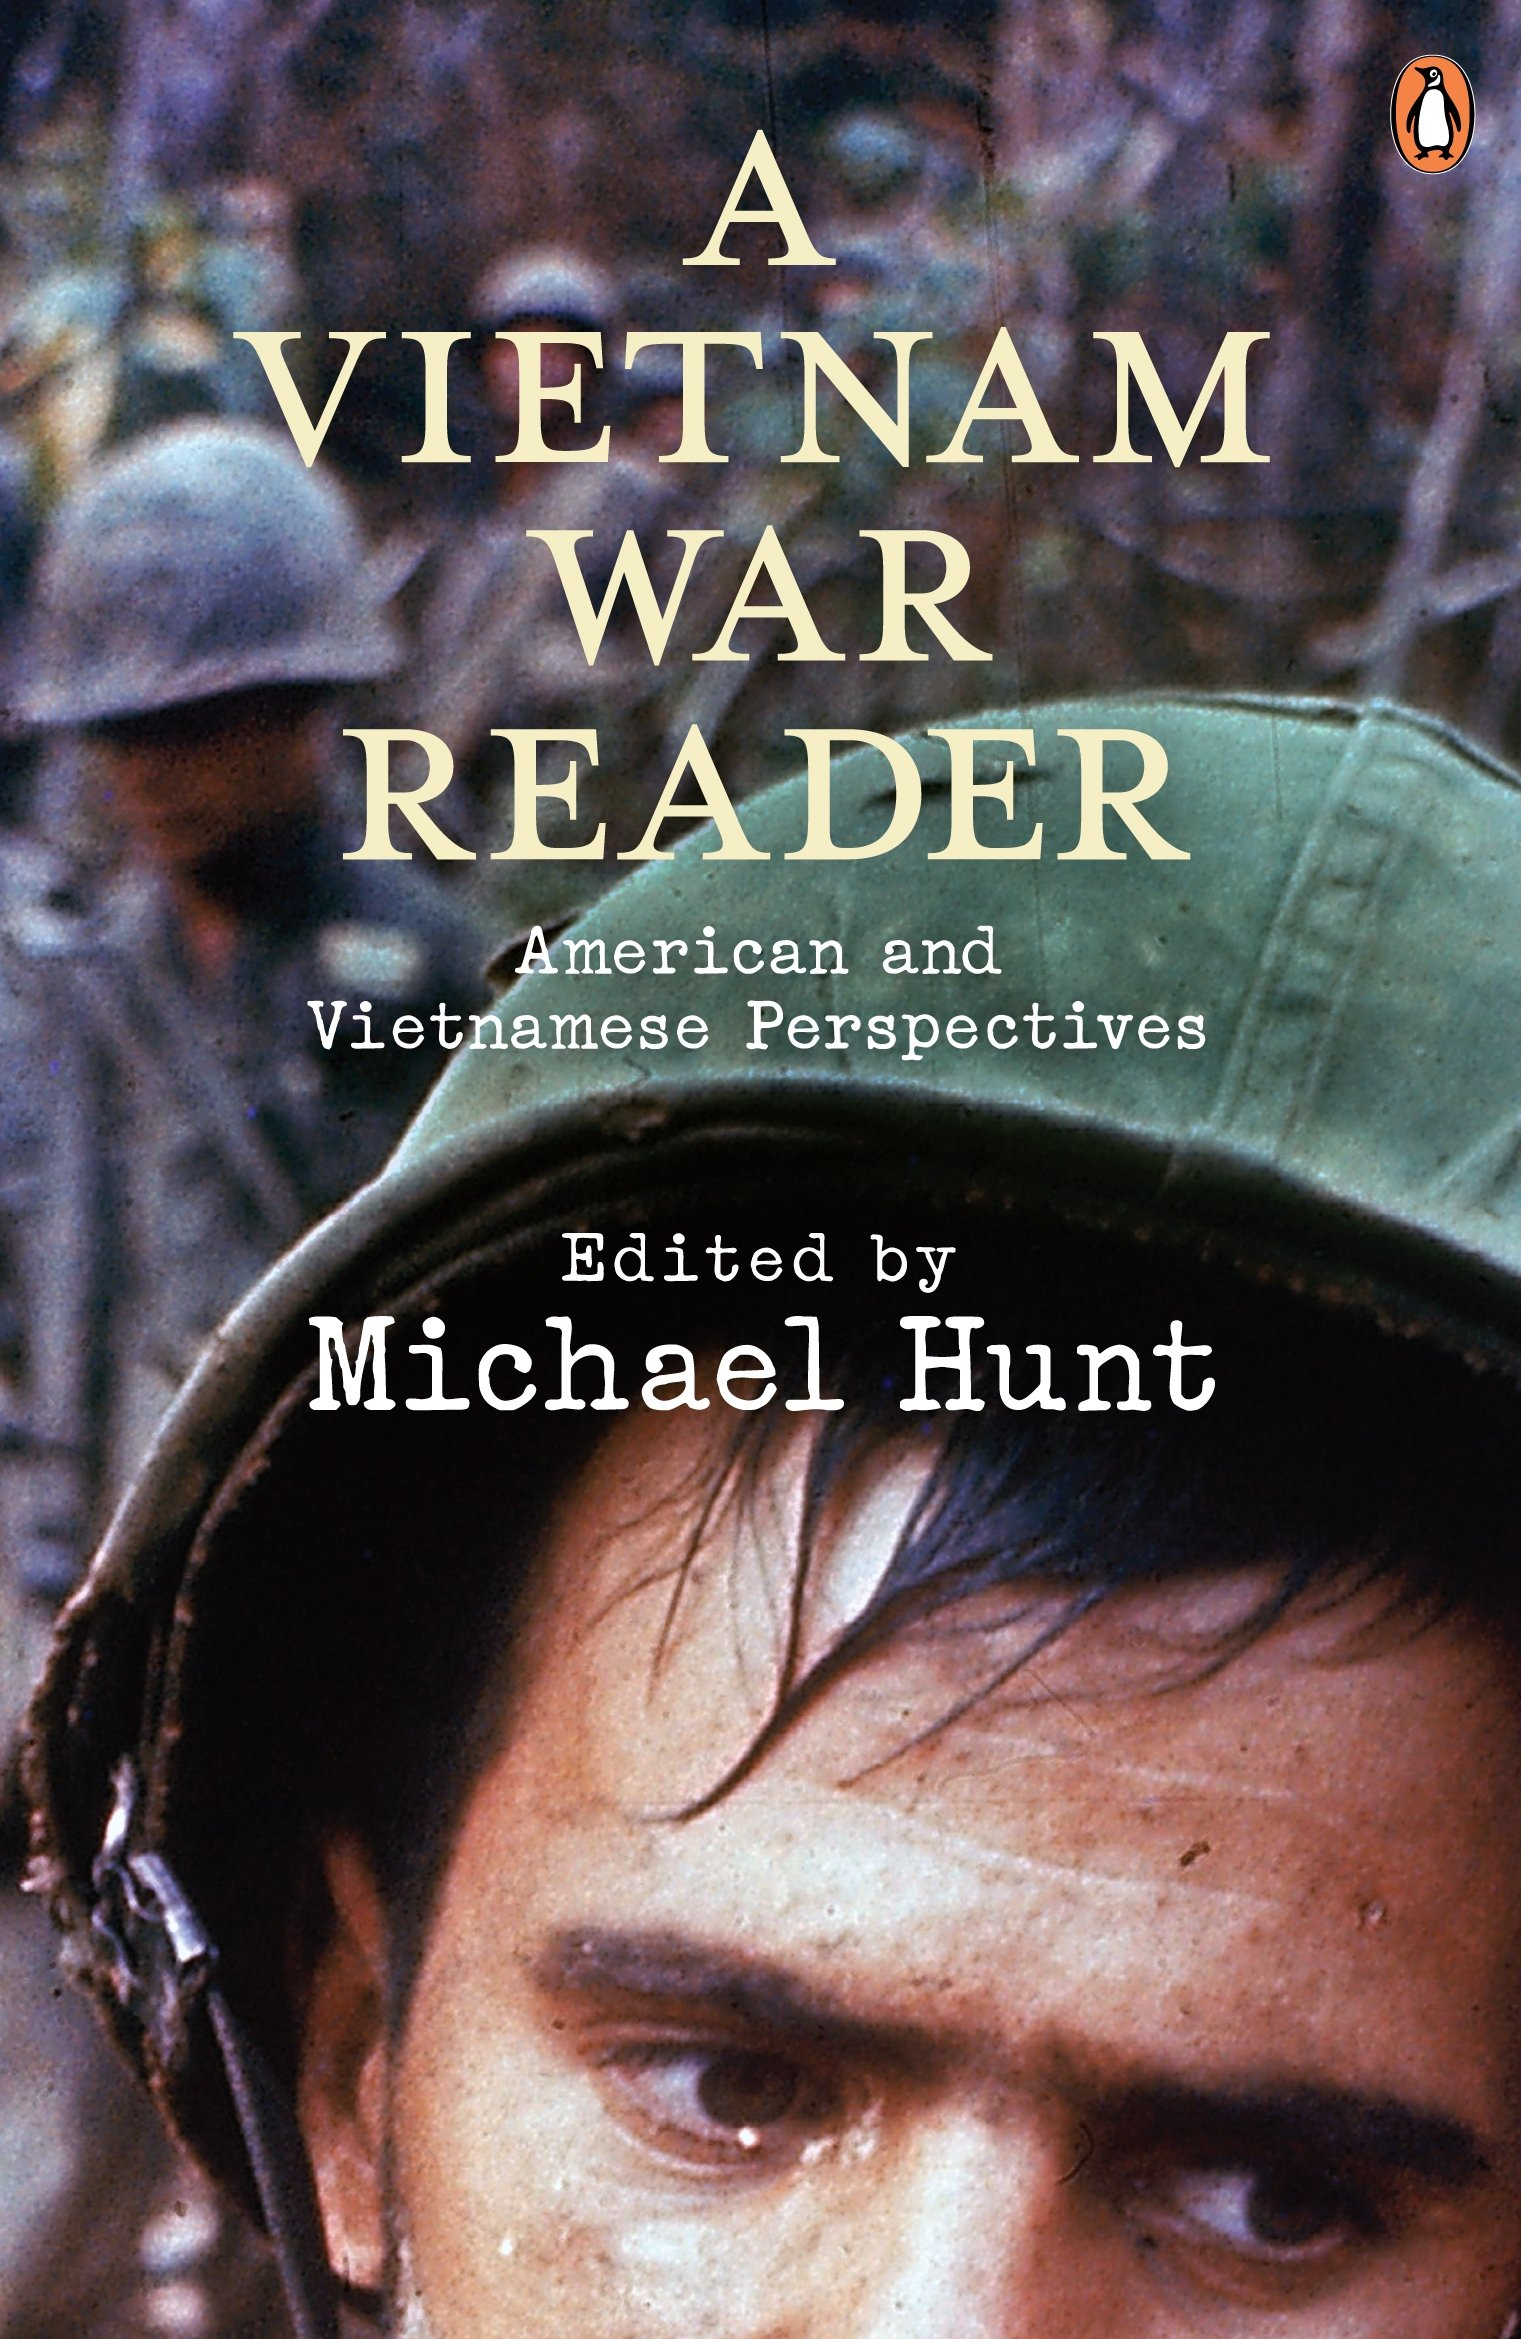 major problems in the history of the vietnam war documents and a vietnam war reader american and viet se perspectives